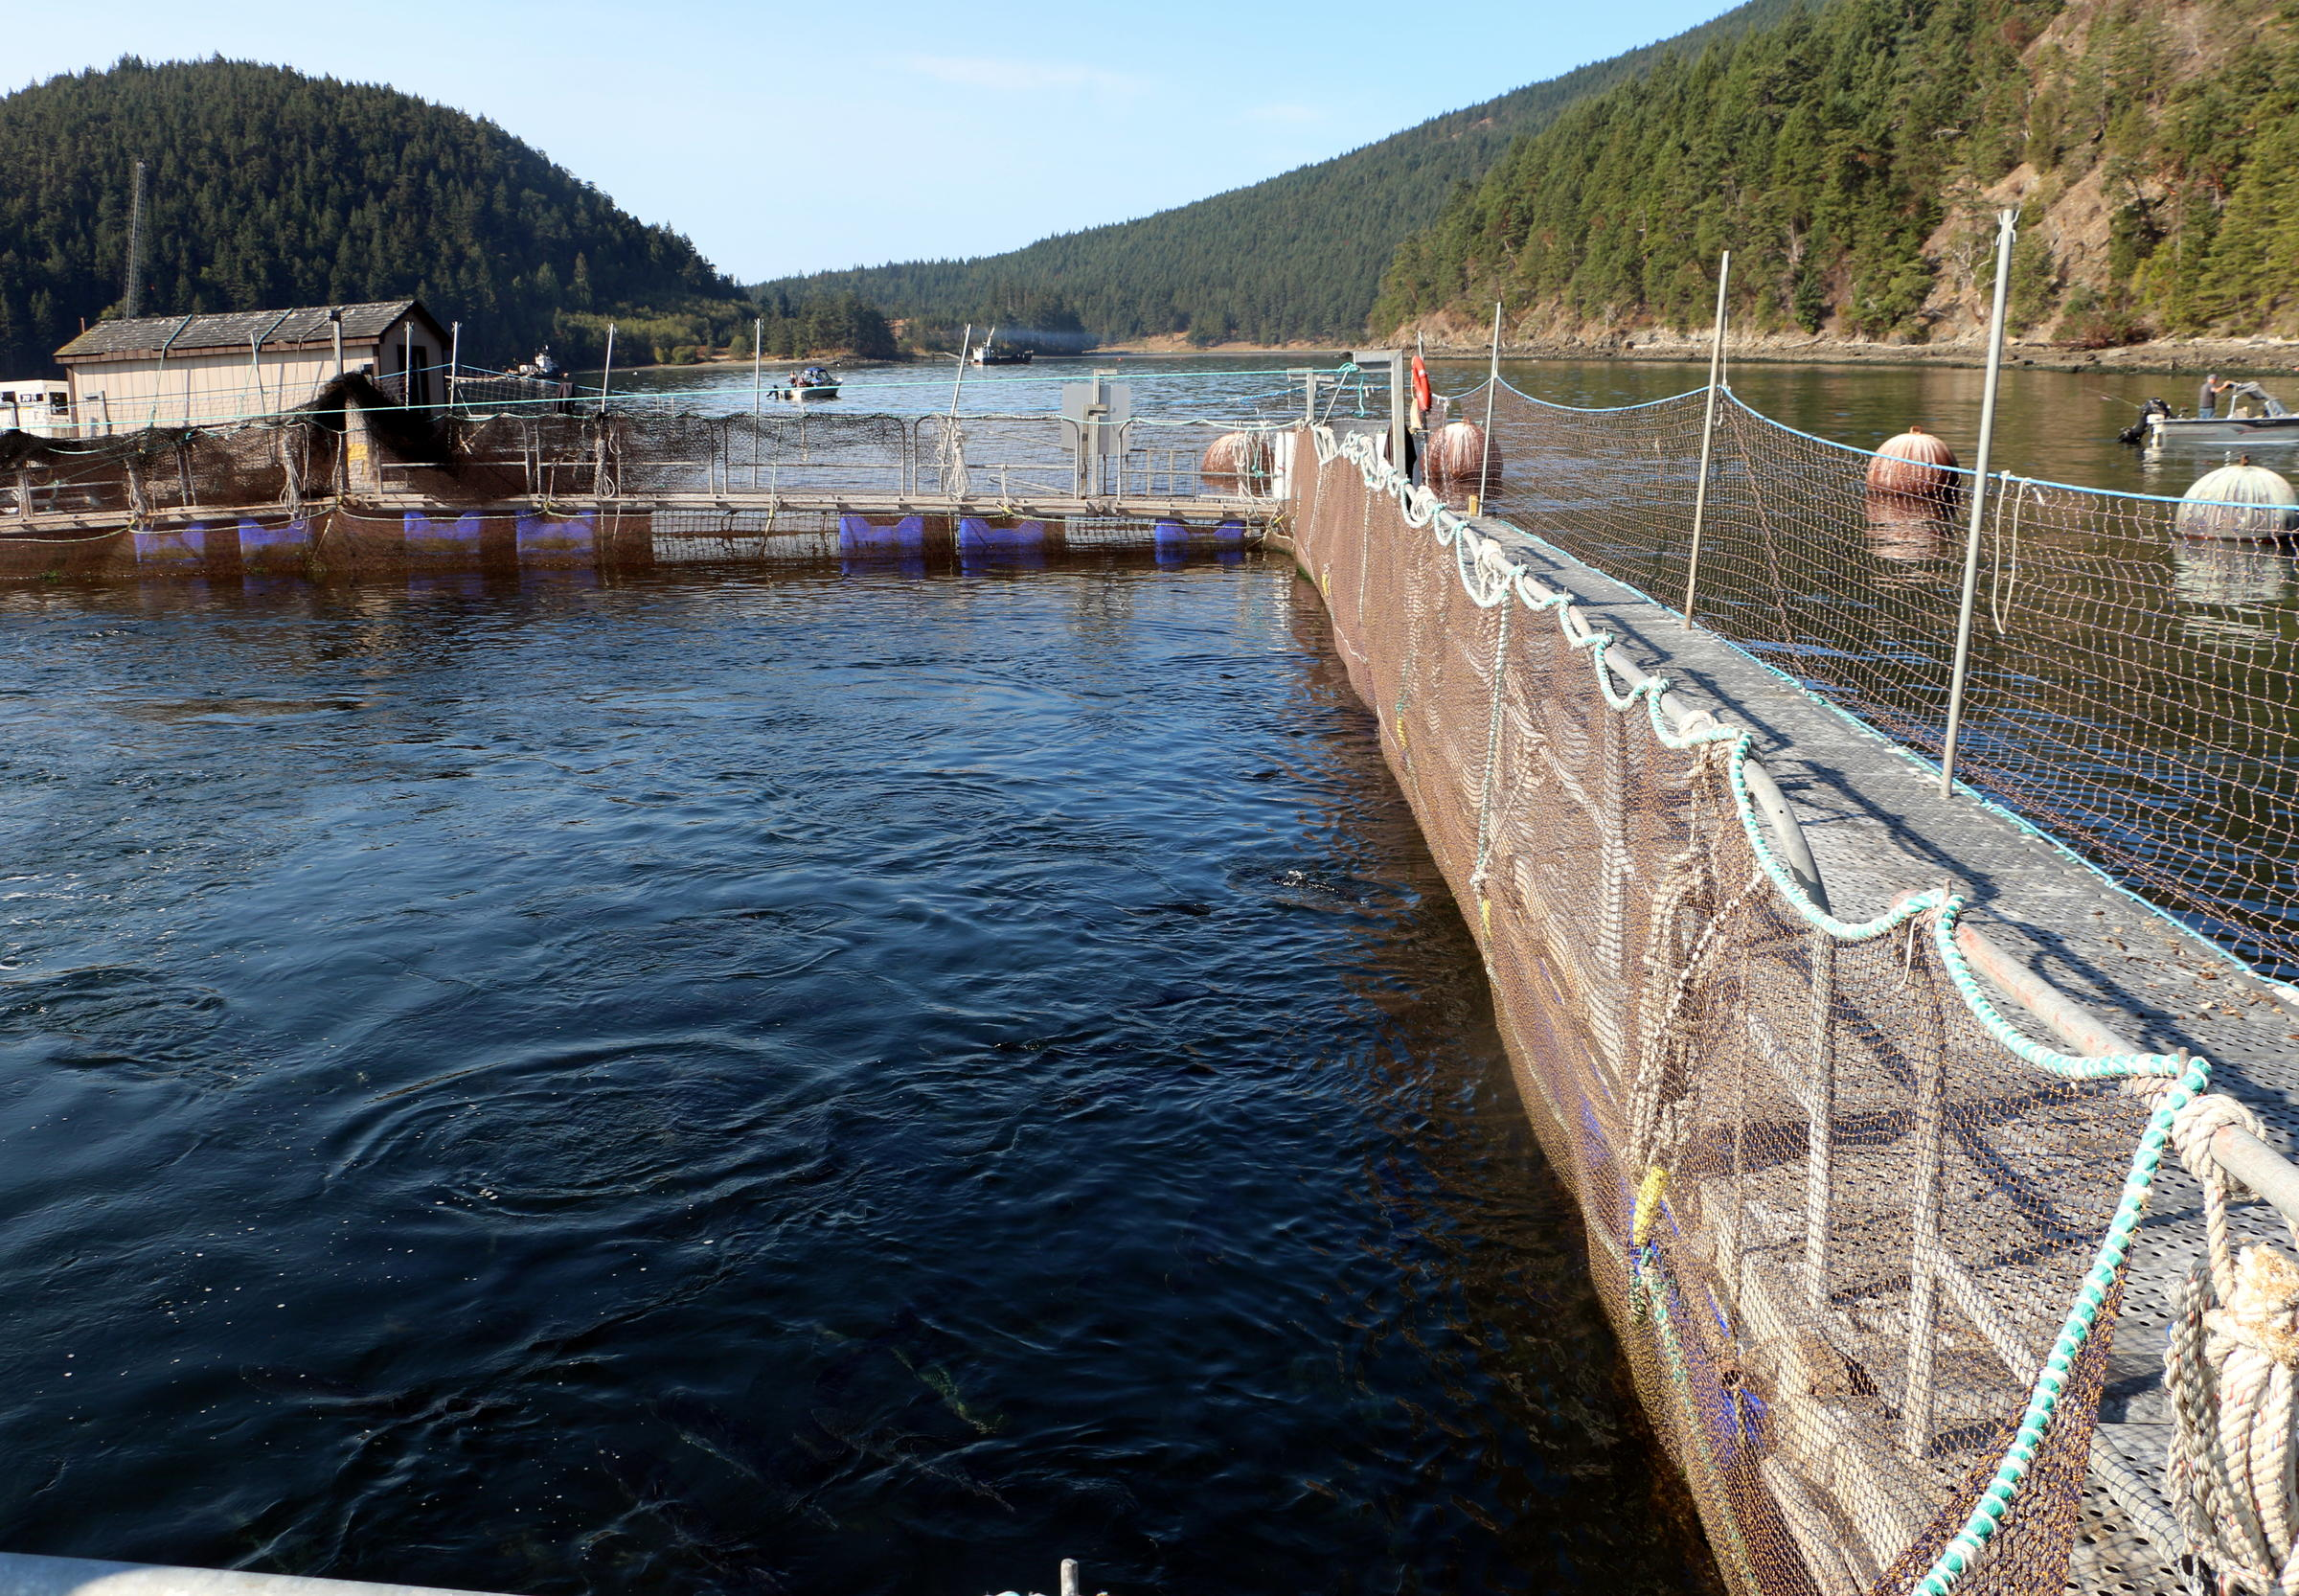 Puget Sound piracy leaves trail of (salmon) blood | KUOW